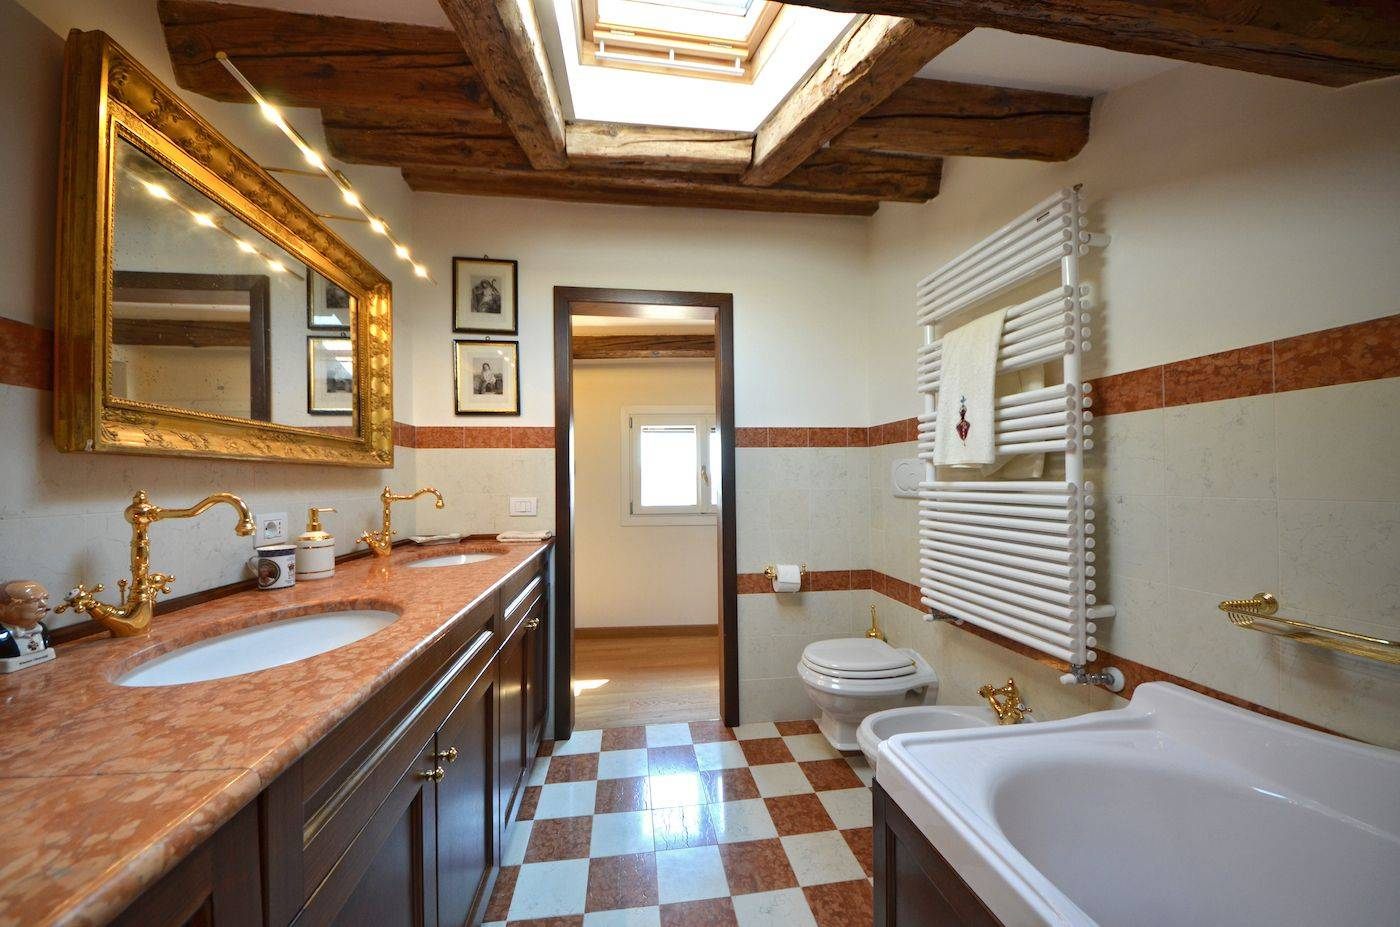 brand new and very functional bathroom with tub